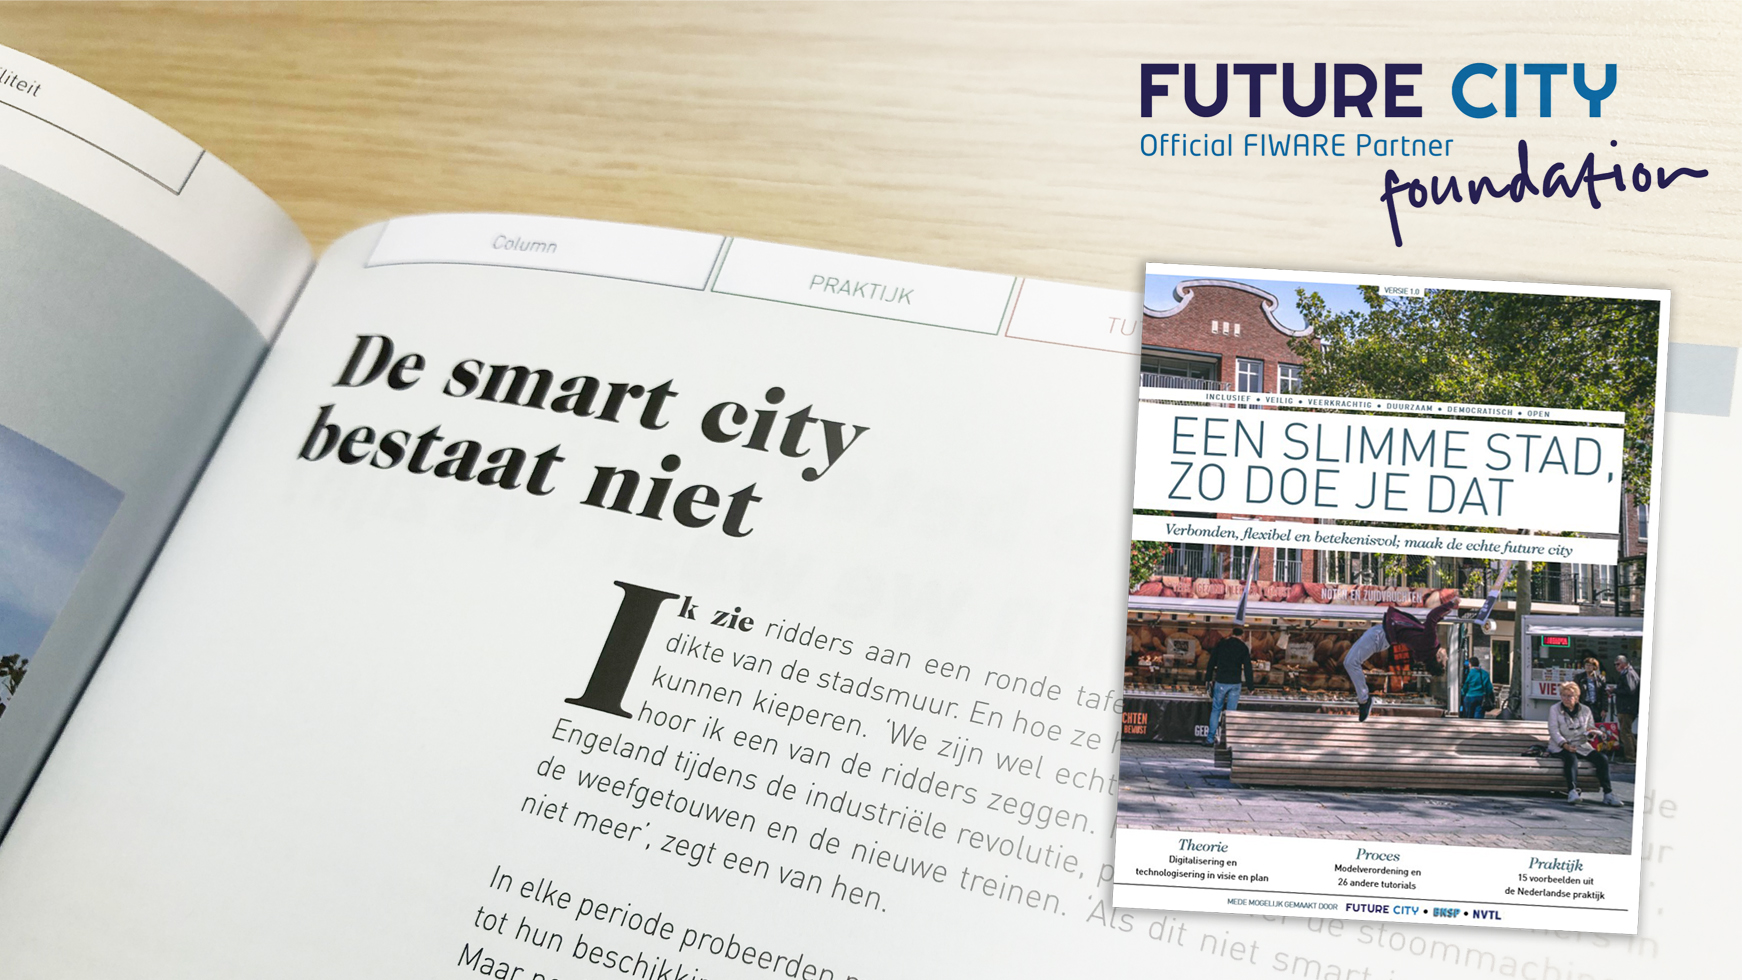 De smart city bestaat niet